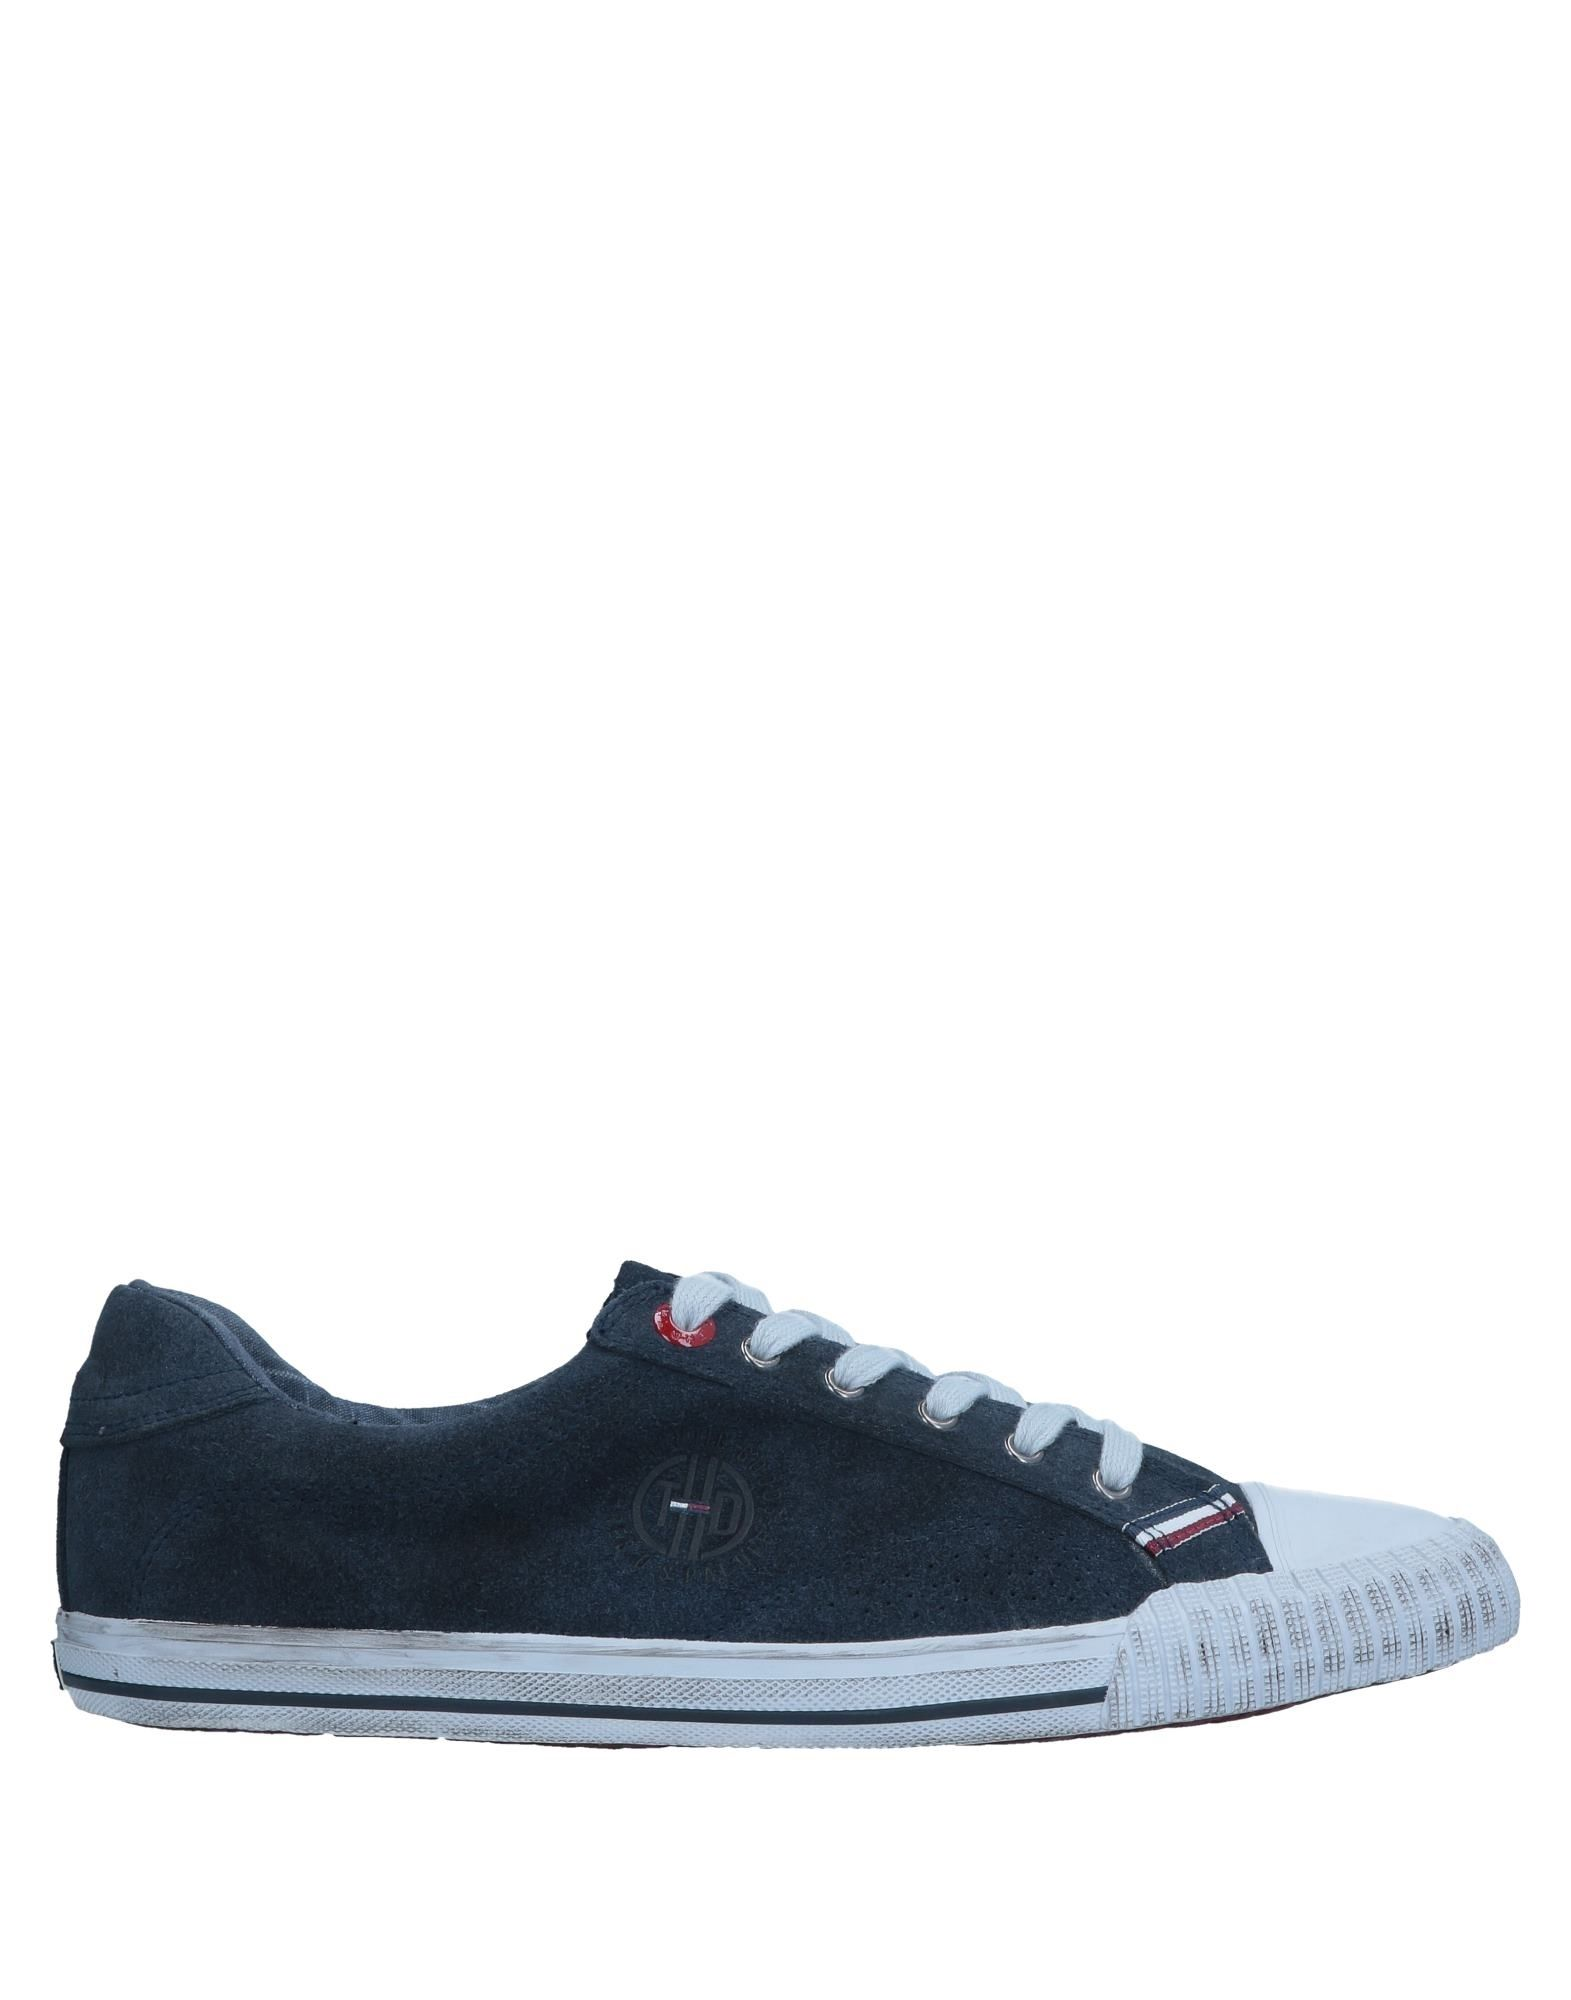 Sneakers Tommy Hilfiger Uomo - 11545743LO